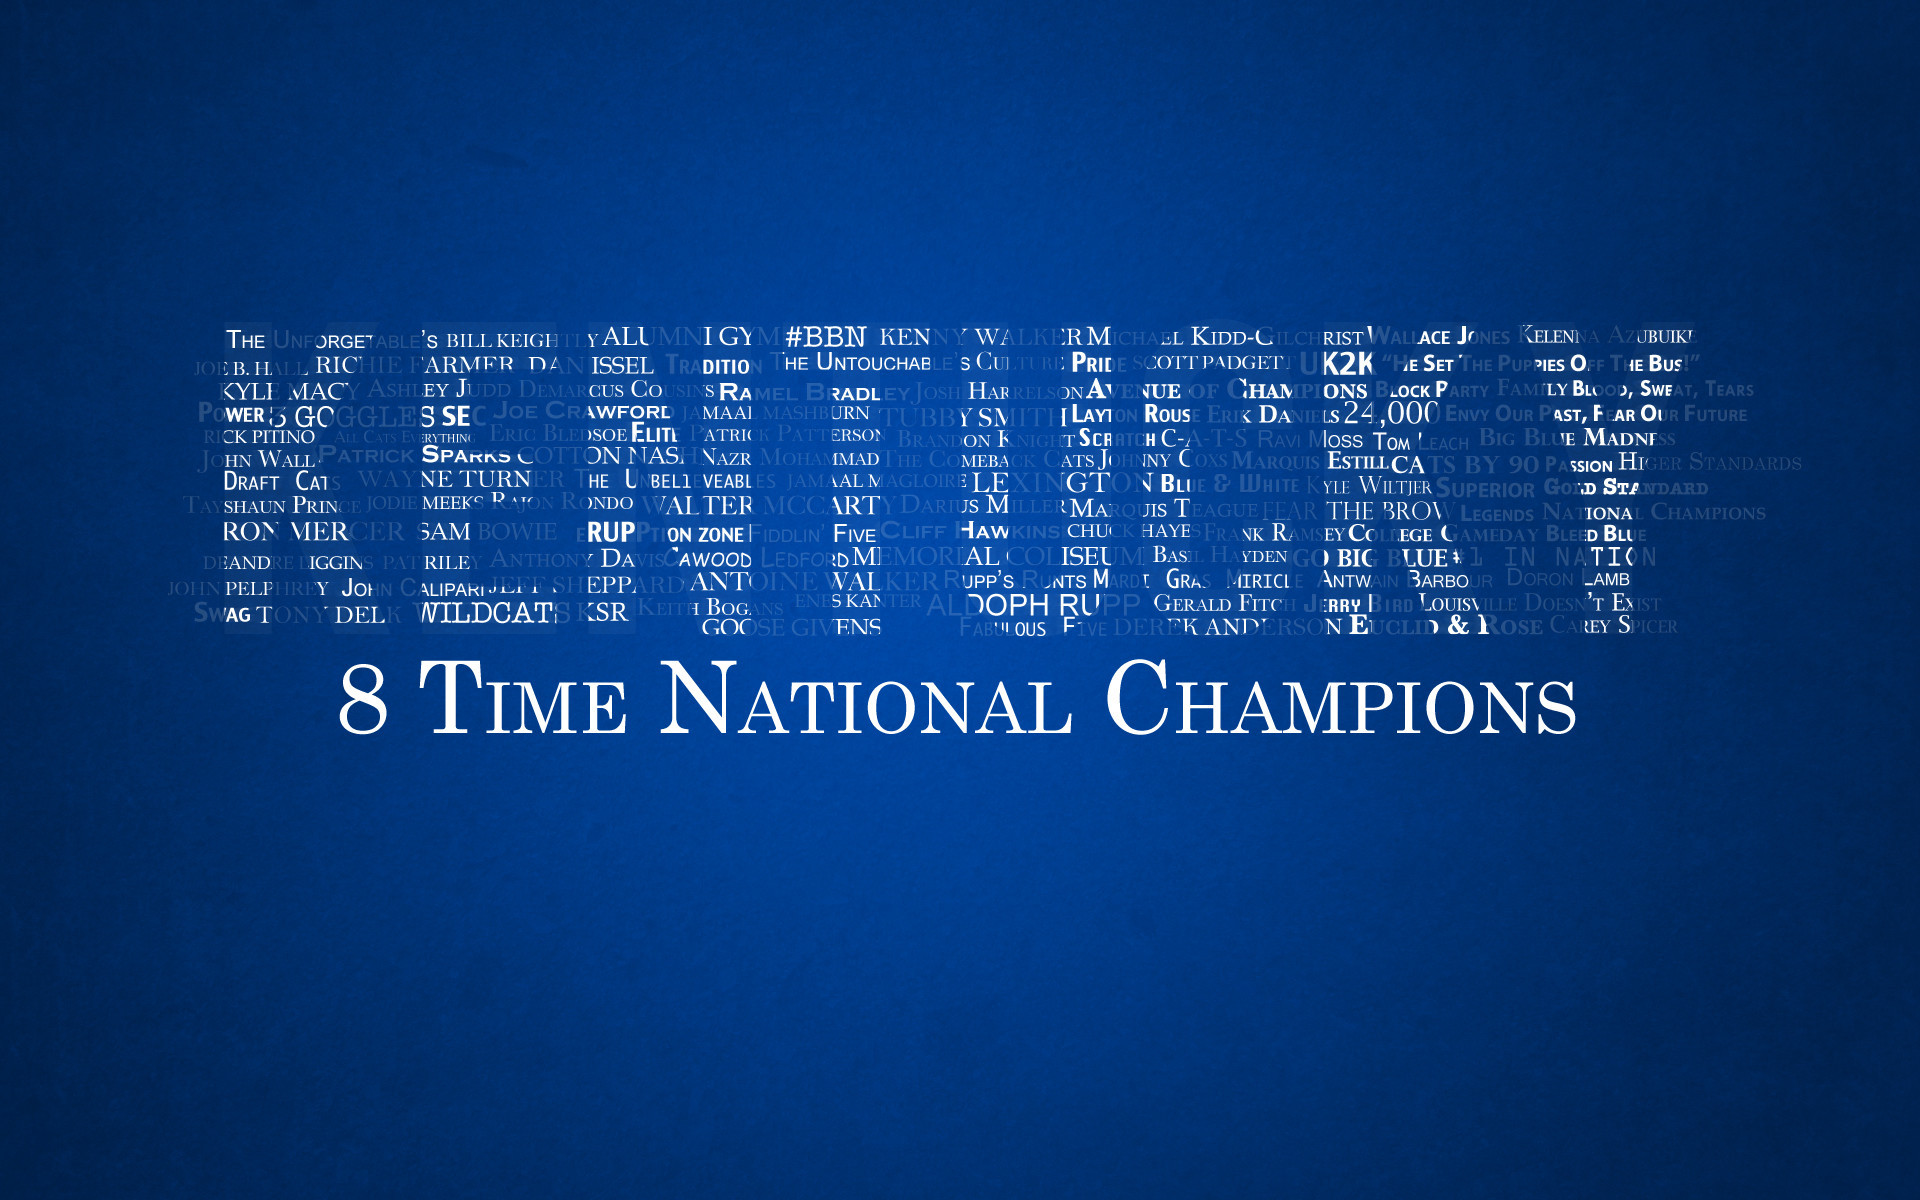 1920x1200 HD Kentucky Wildcats Wallpaper.